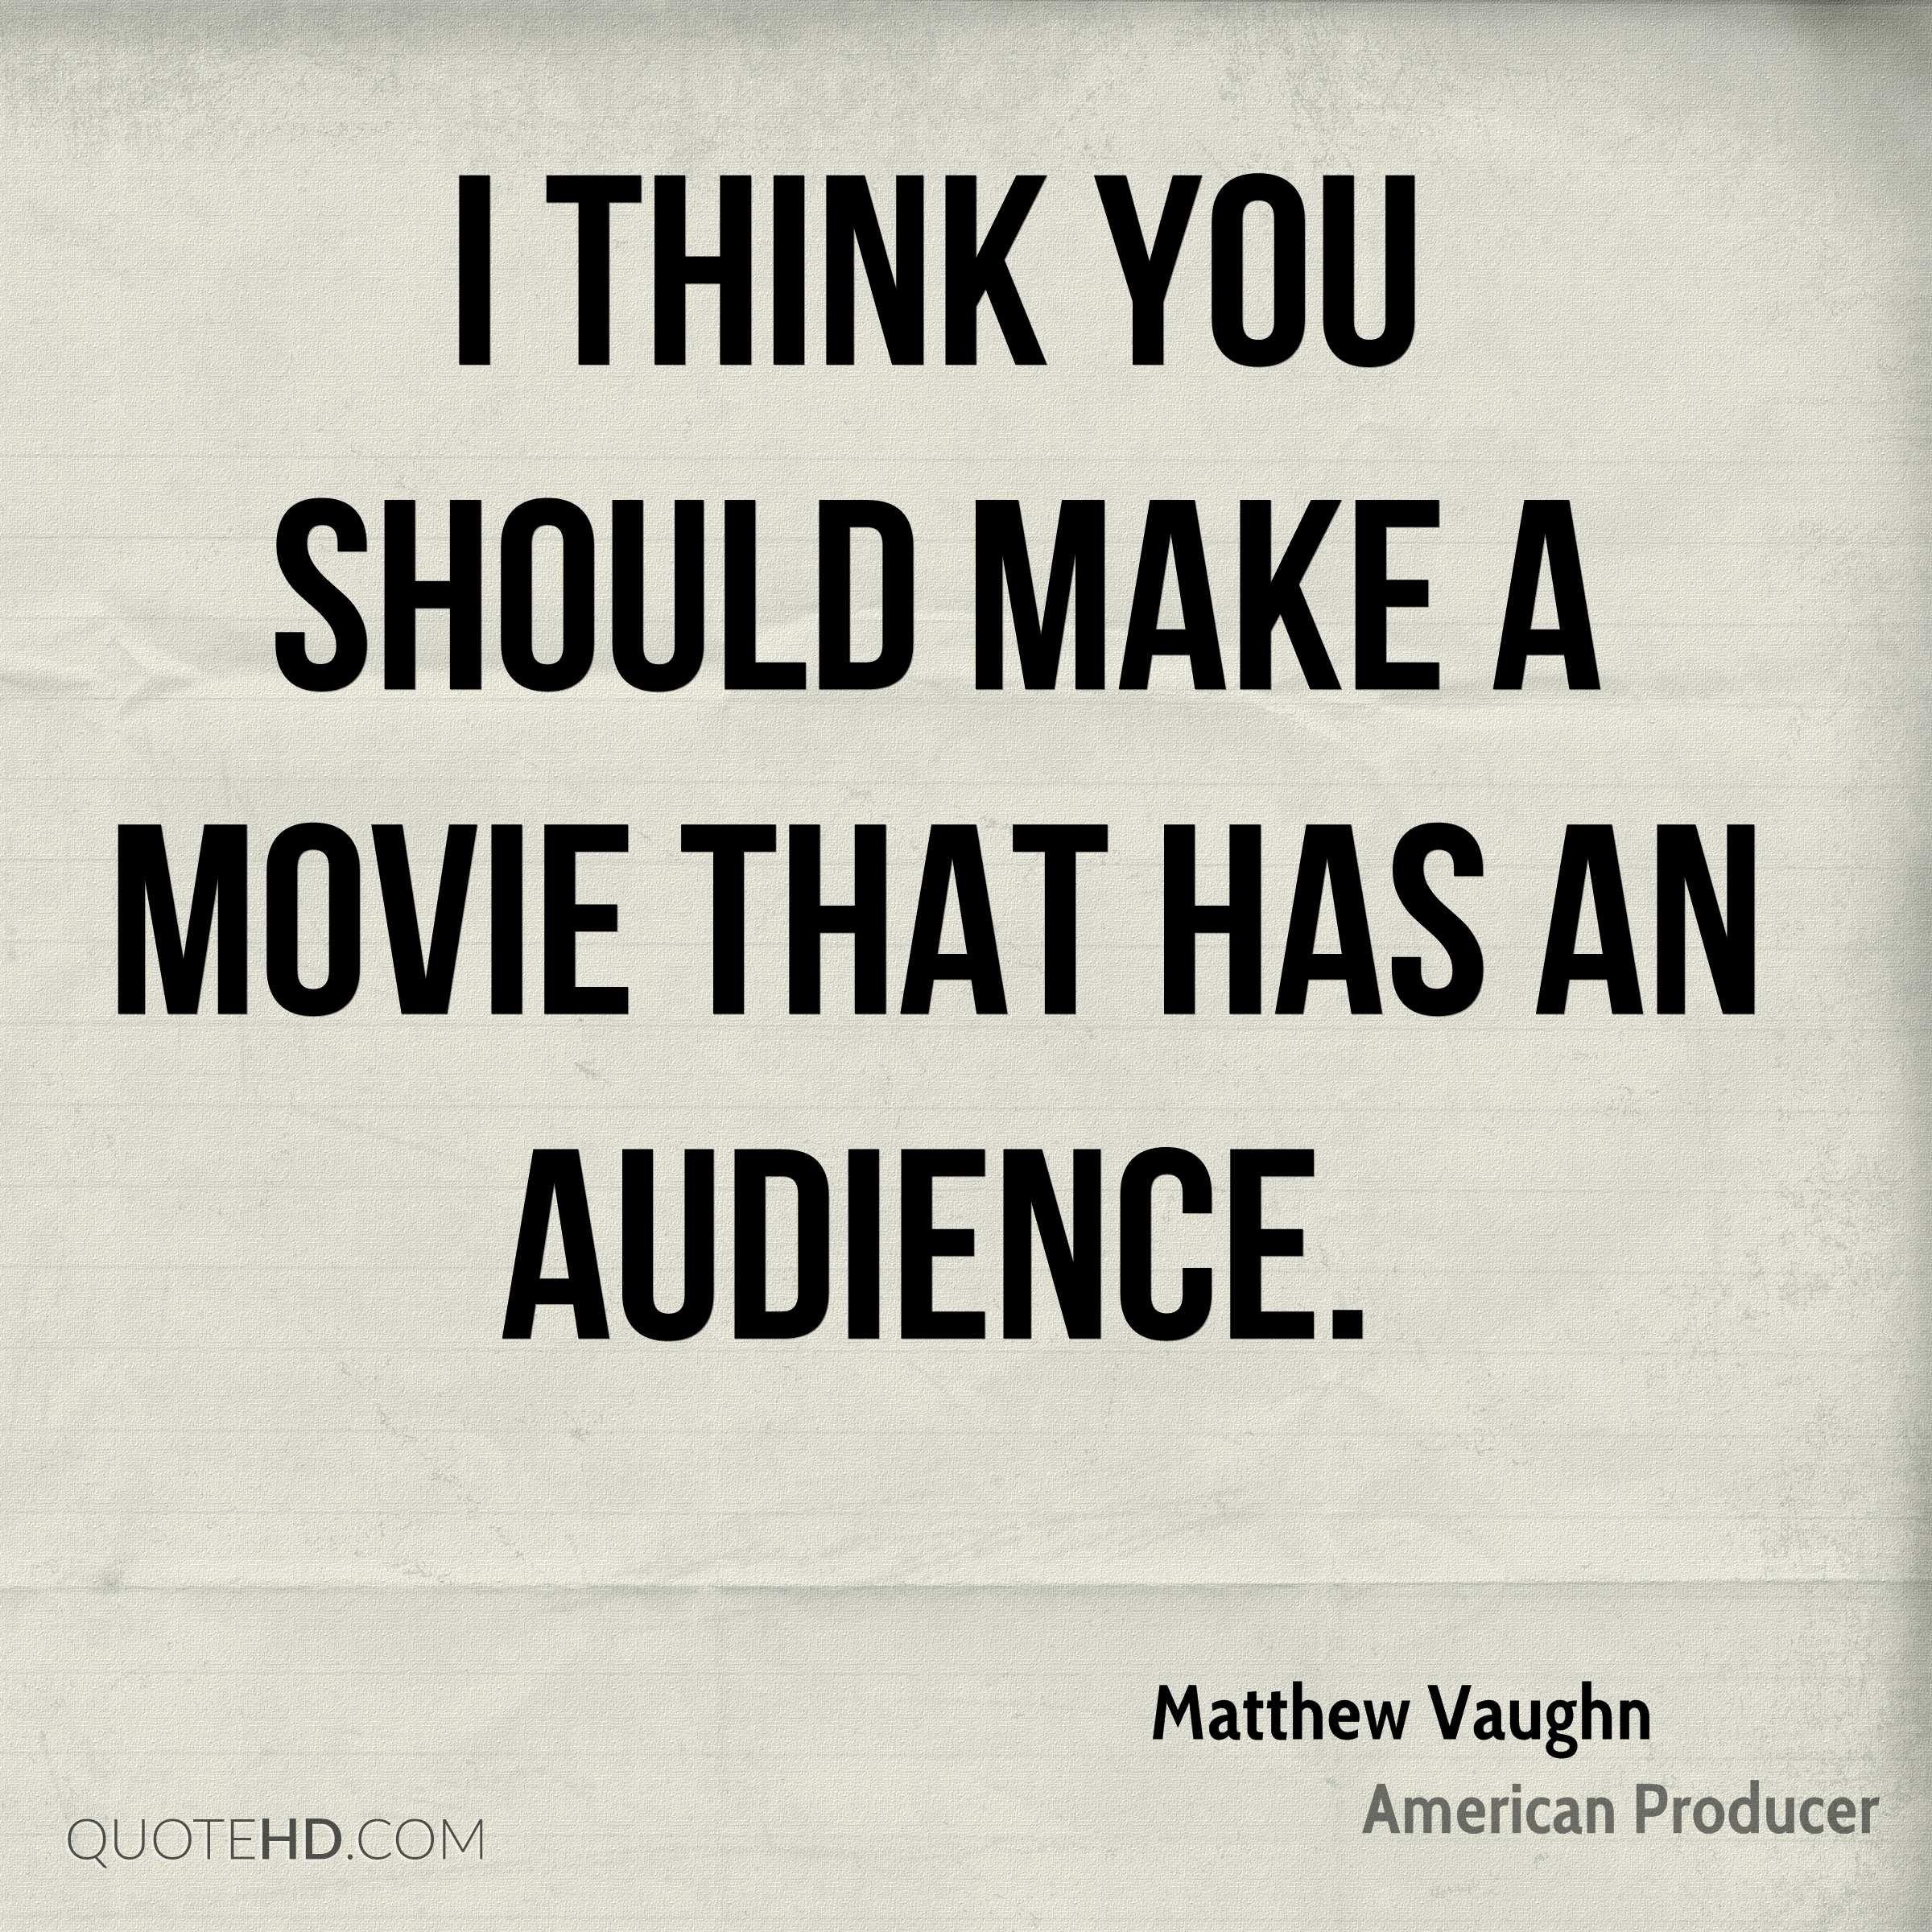 I think you should make a movie that has an audience.